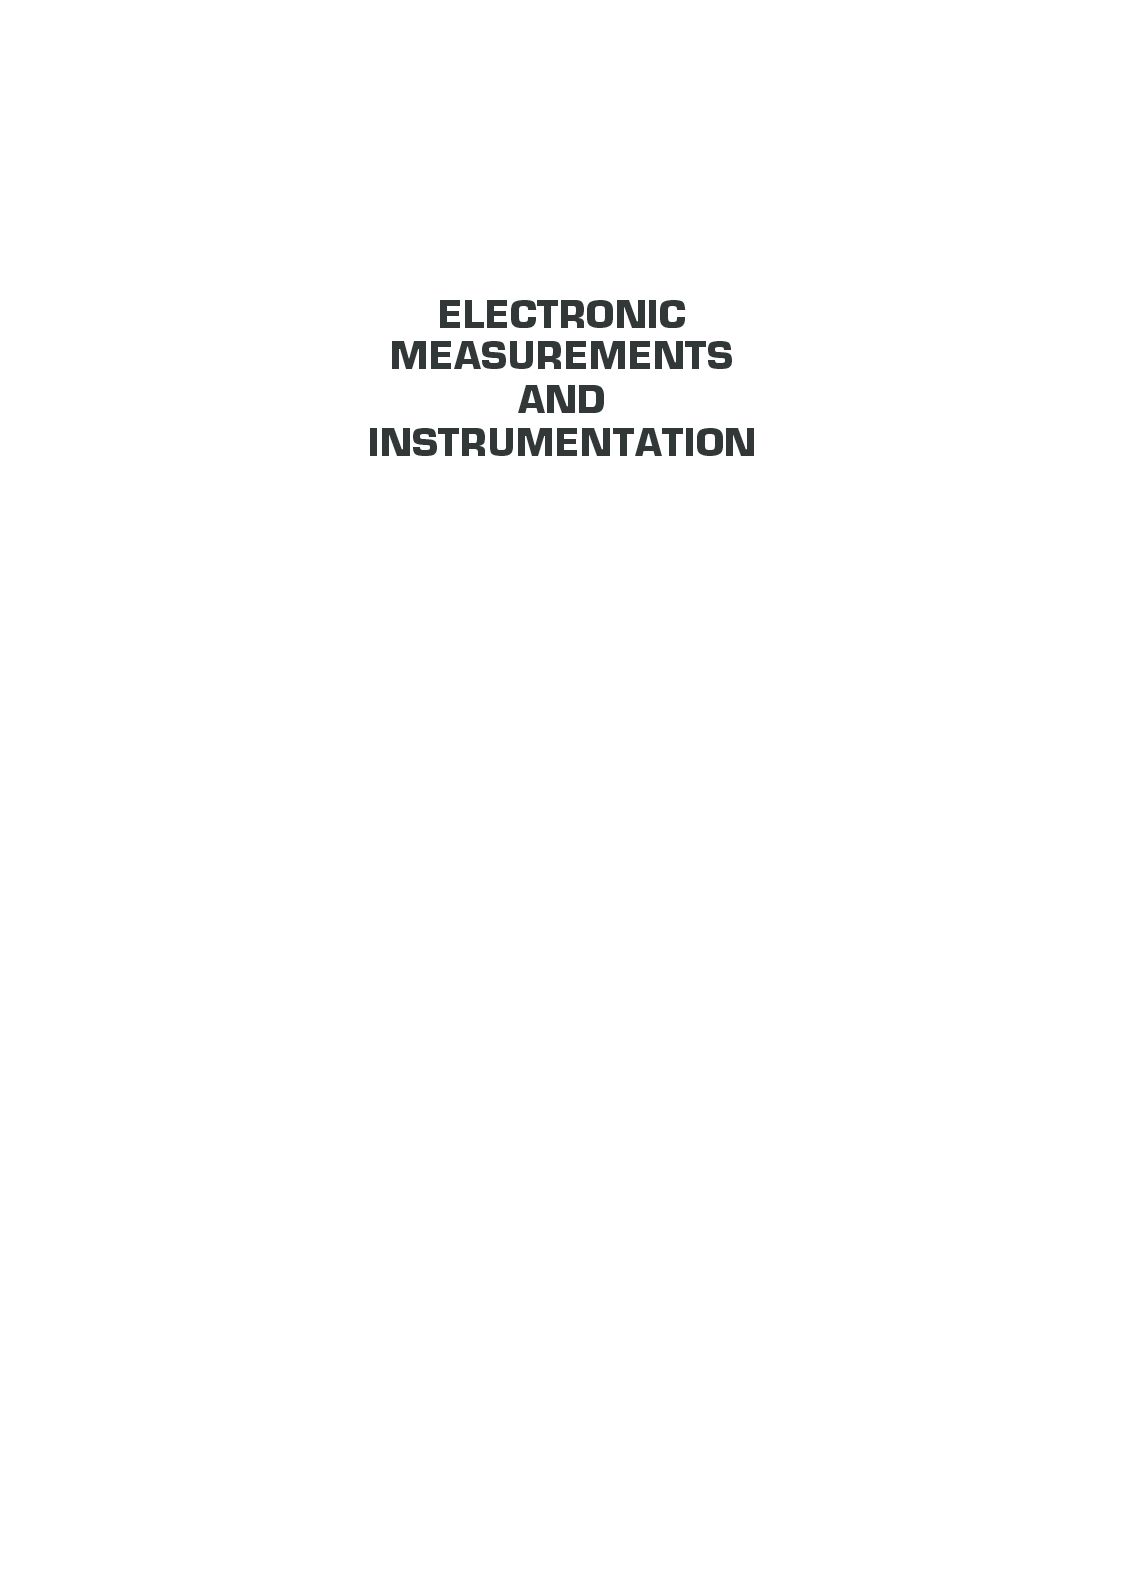 Electronic Measurement And Instrumentation - Page 2